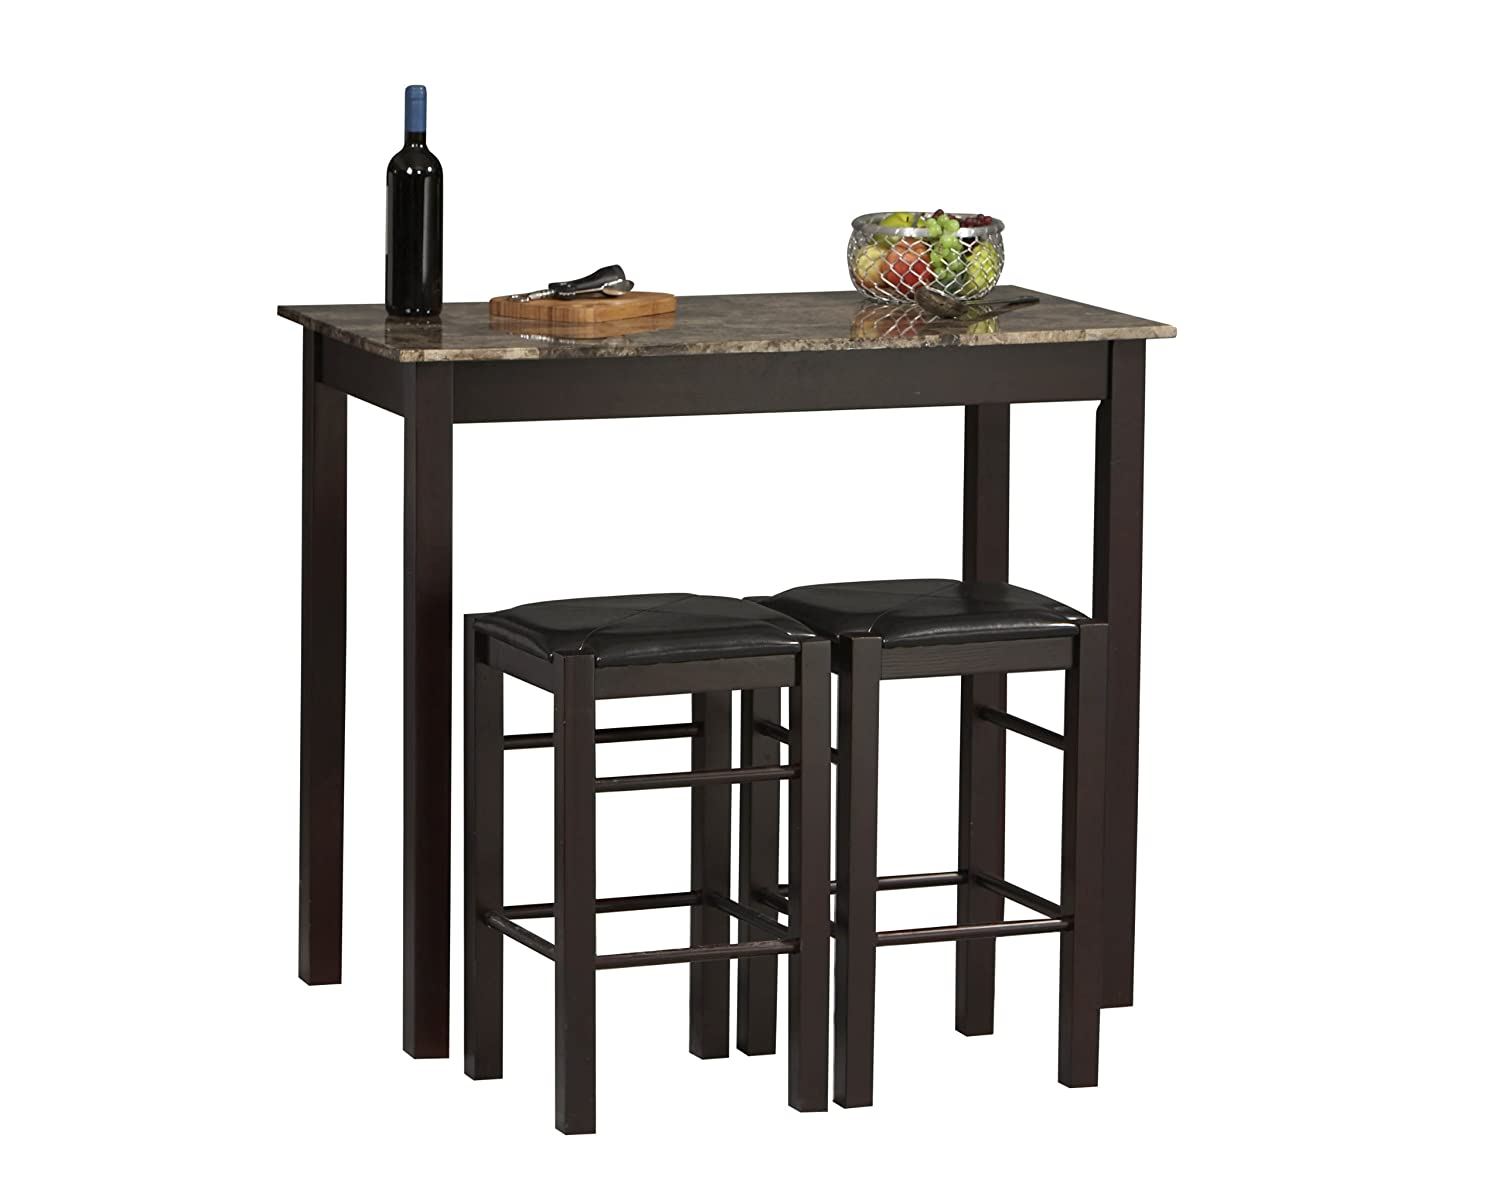 rectangular table and 2 stools 42 x 22 2 x 36 inches check price